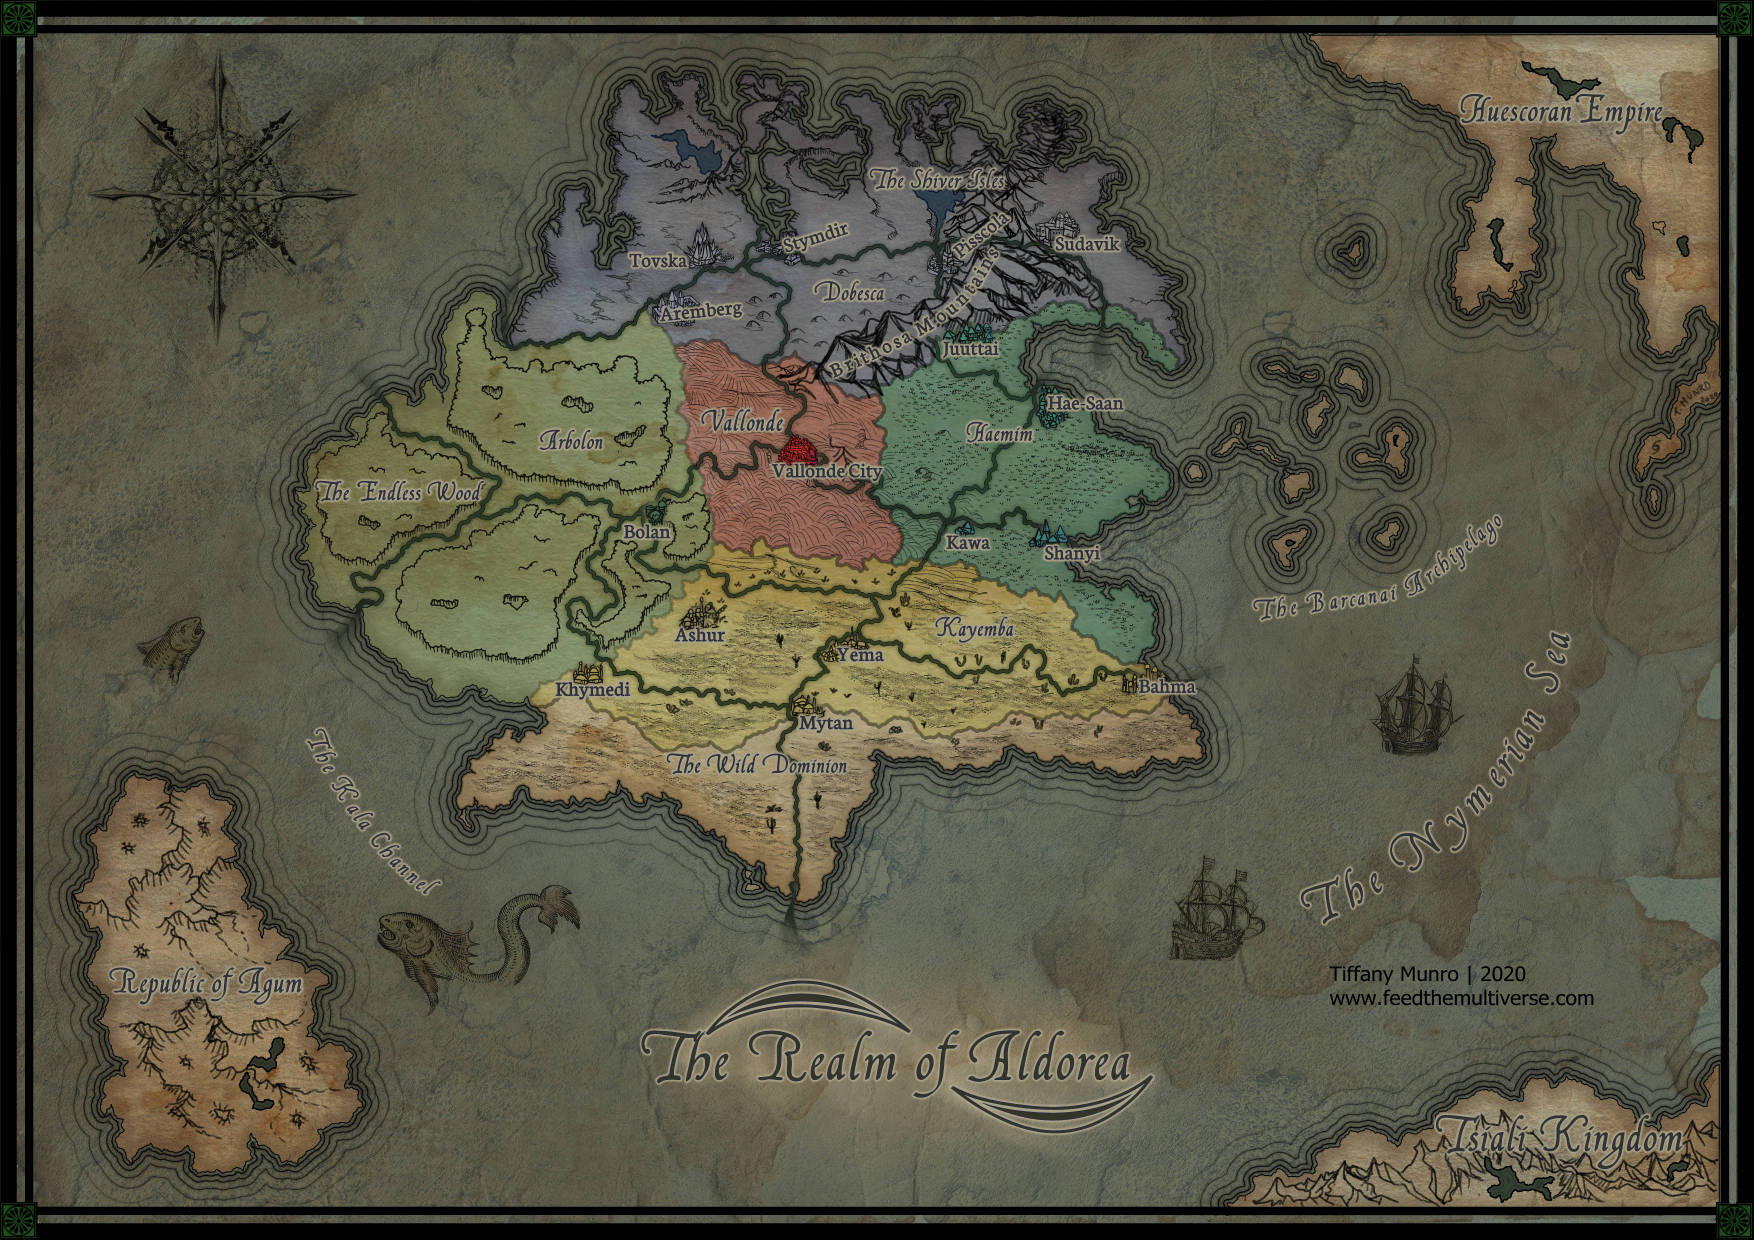 Continent of Aldorea fantasy map flat color countries watercolor on parchment medival style fantasy map medieval hand drawn map by Tiffany Munro cartography custom cartographer fantasy world building consultant how to get a custom map for my DnD D&D Pathfinder game 5e 4e 3.5e 3e